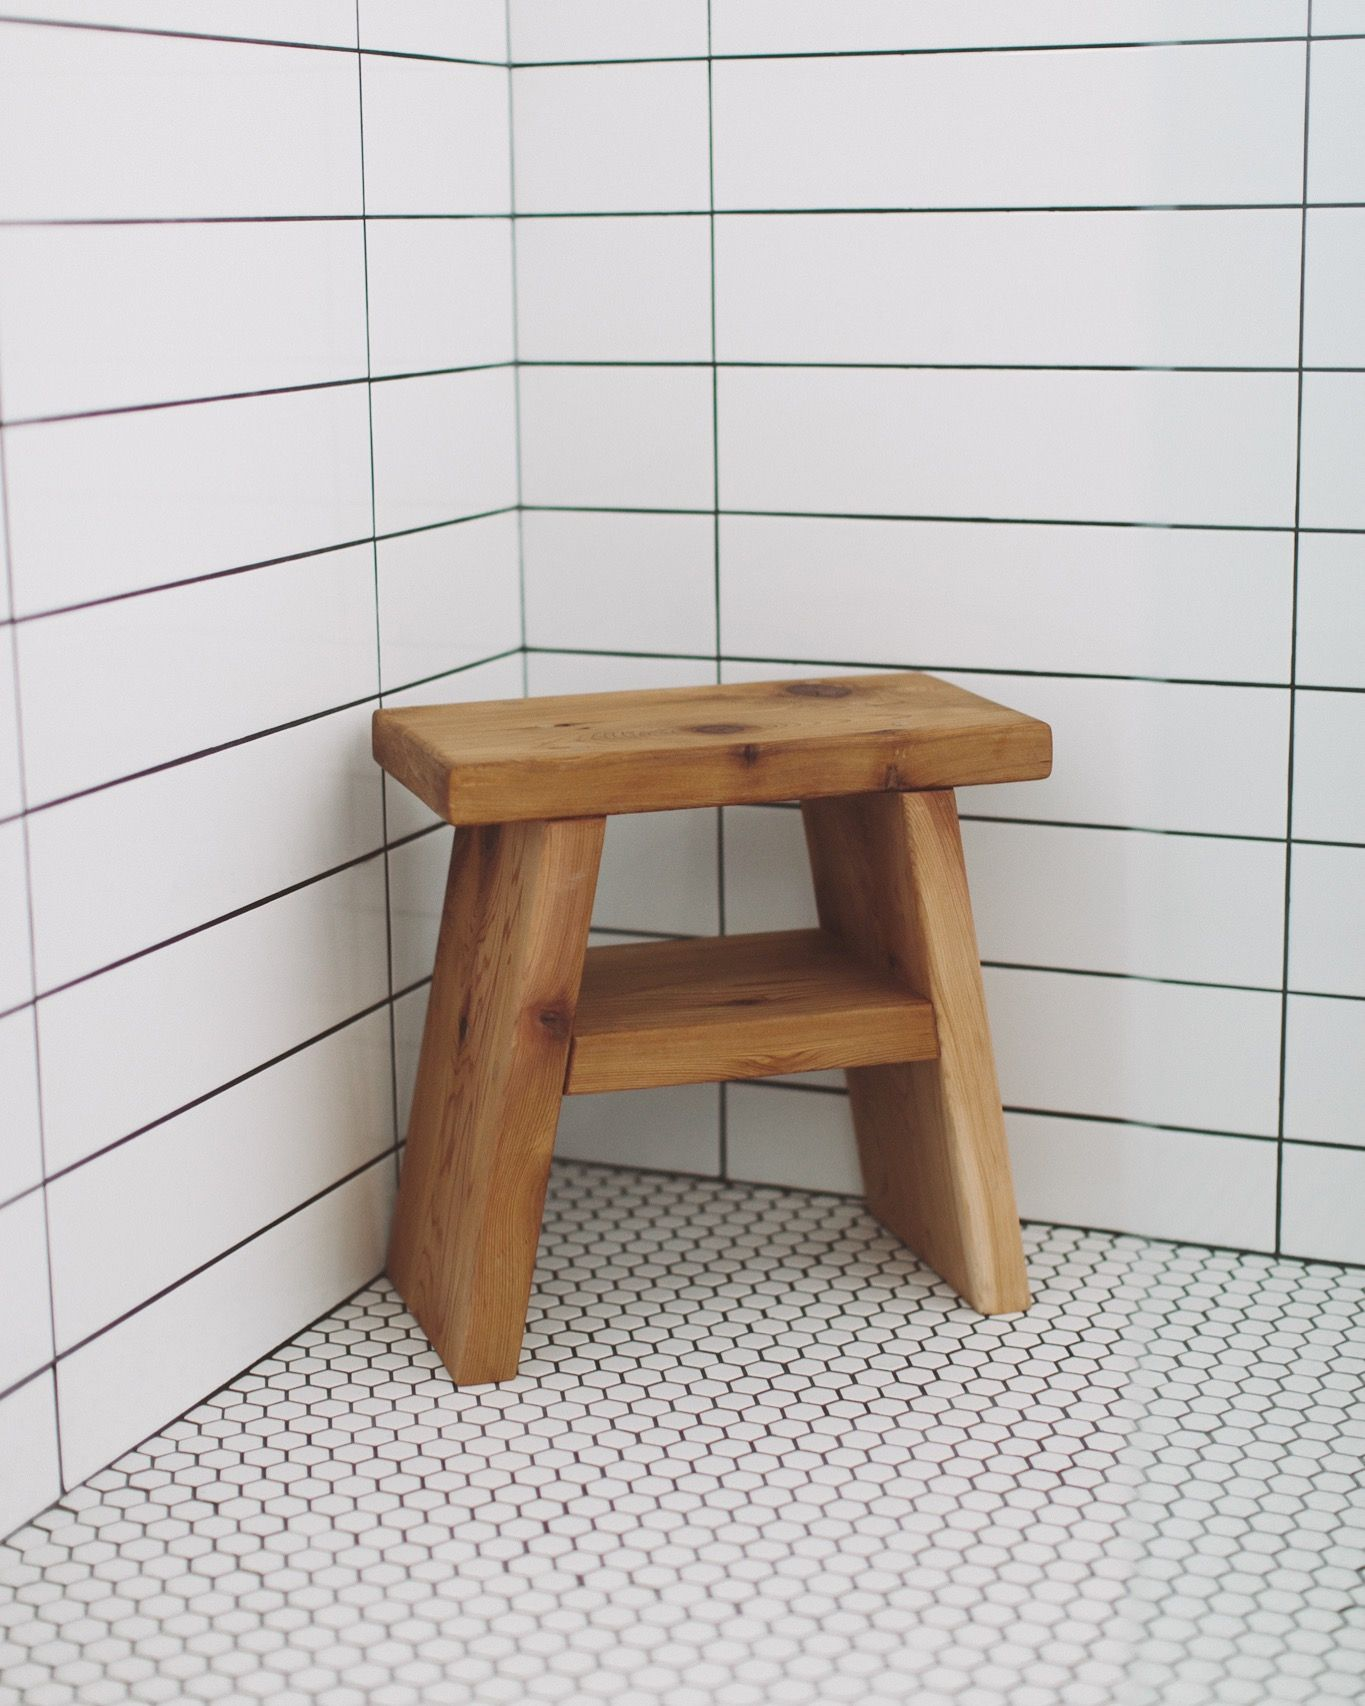 CEDAR SHOWER STOOL DESIGN : BRIEMAKESSPACES